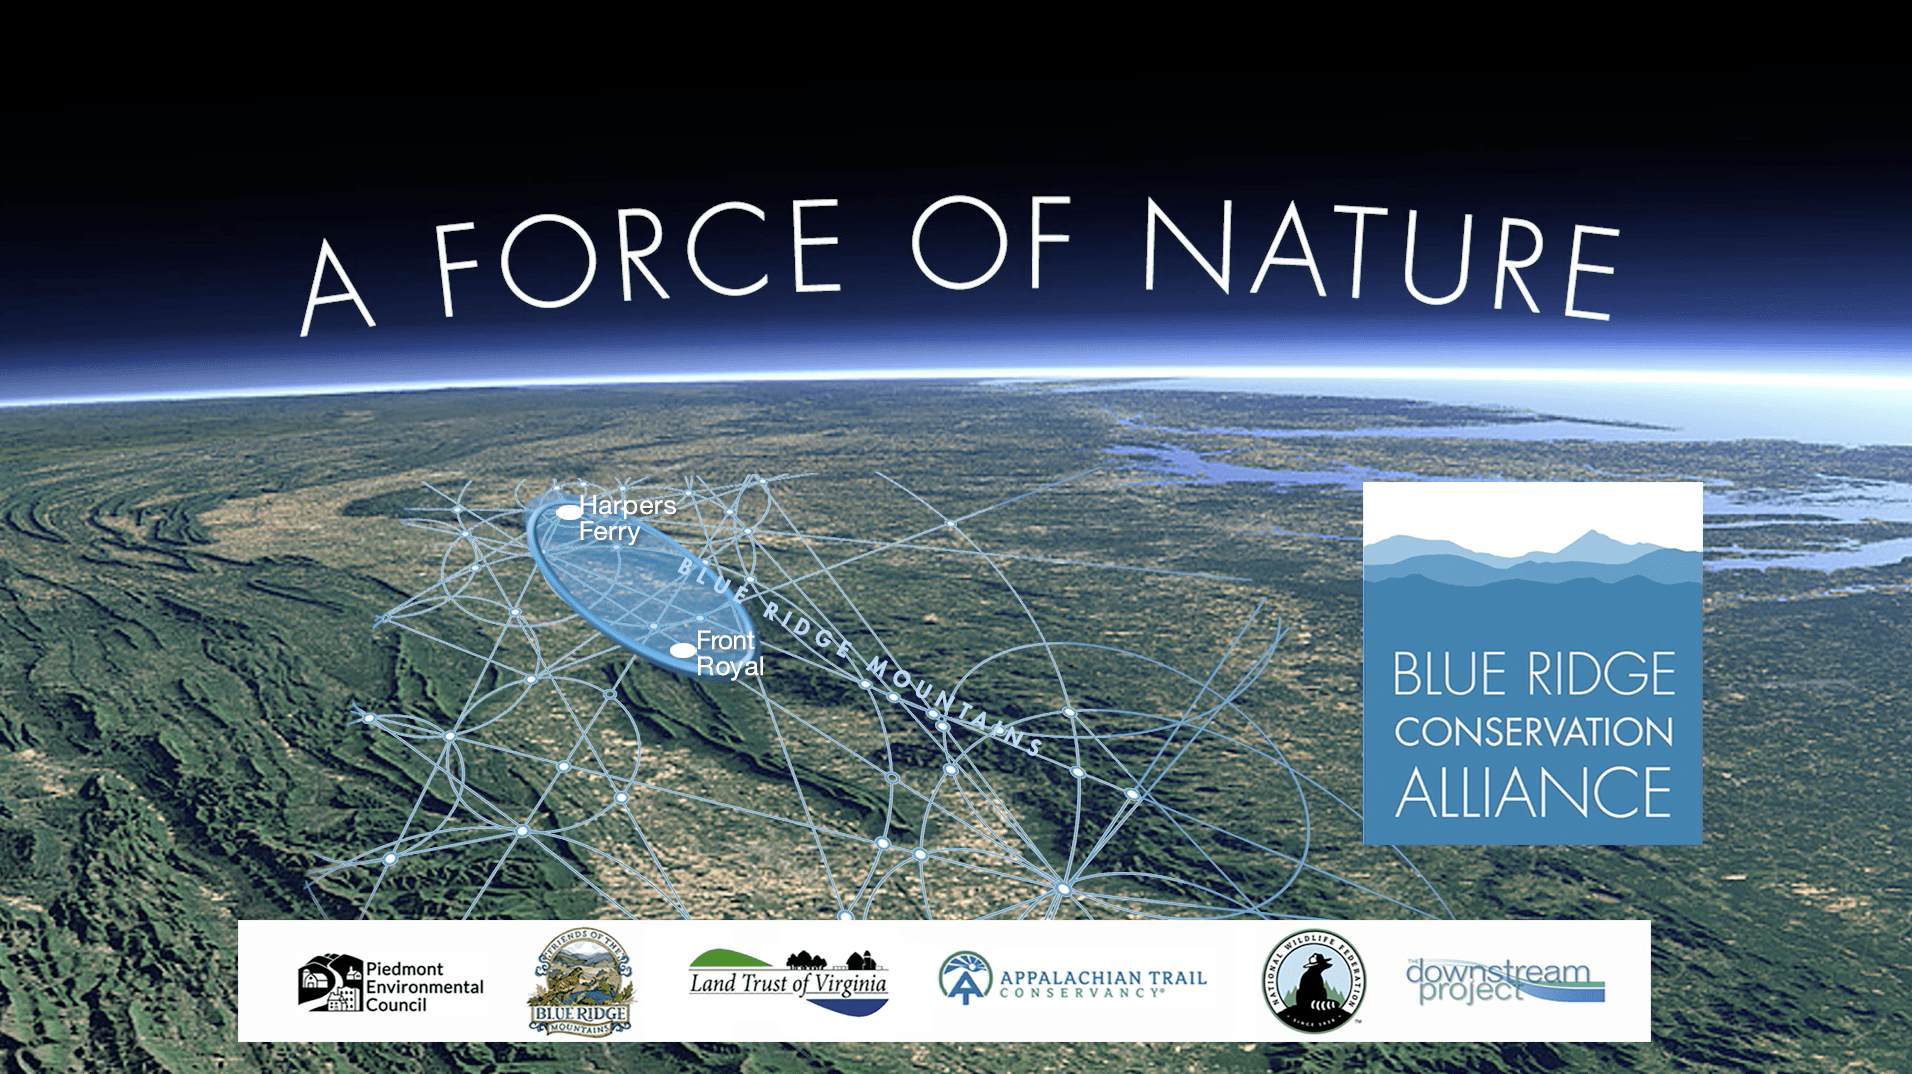 Getting to Know the Blue Ridge Conservation Alliance: The Video